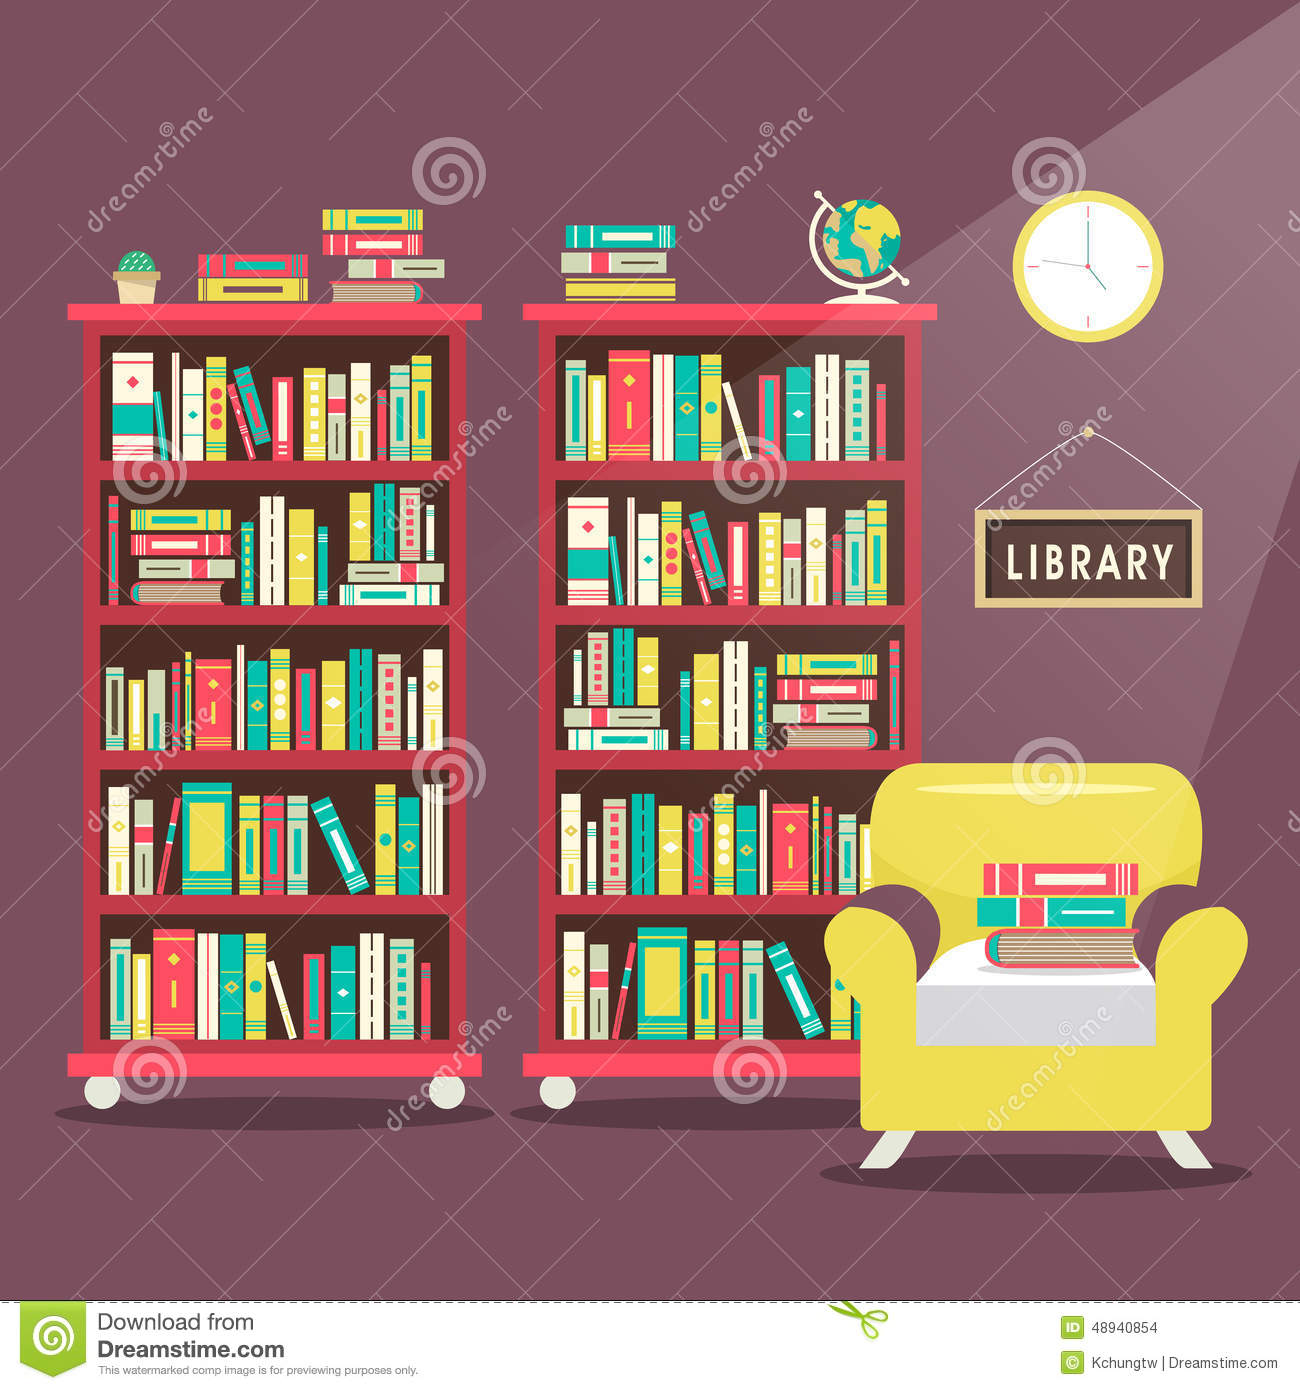 Library Scene Illustration In Flat Design Stock Vector